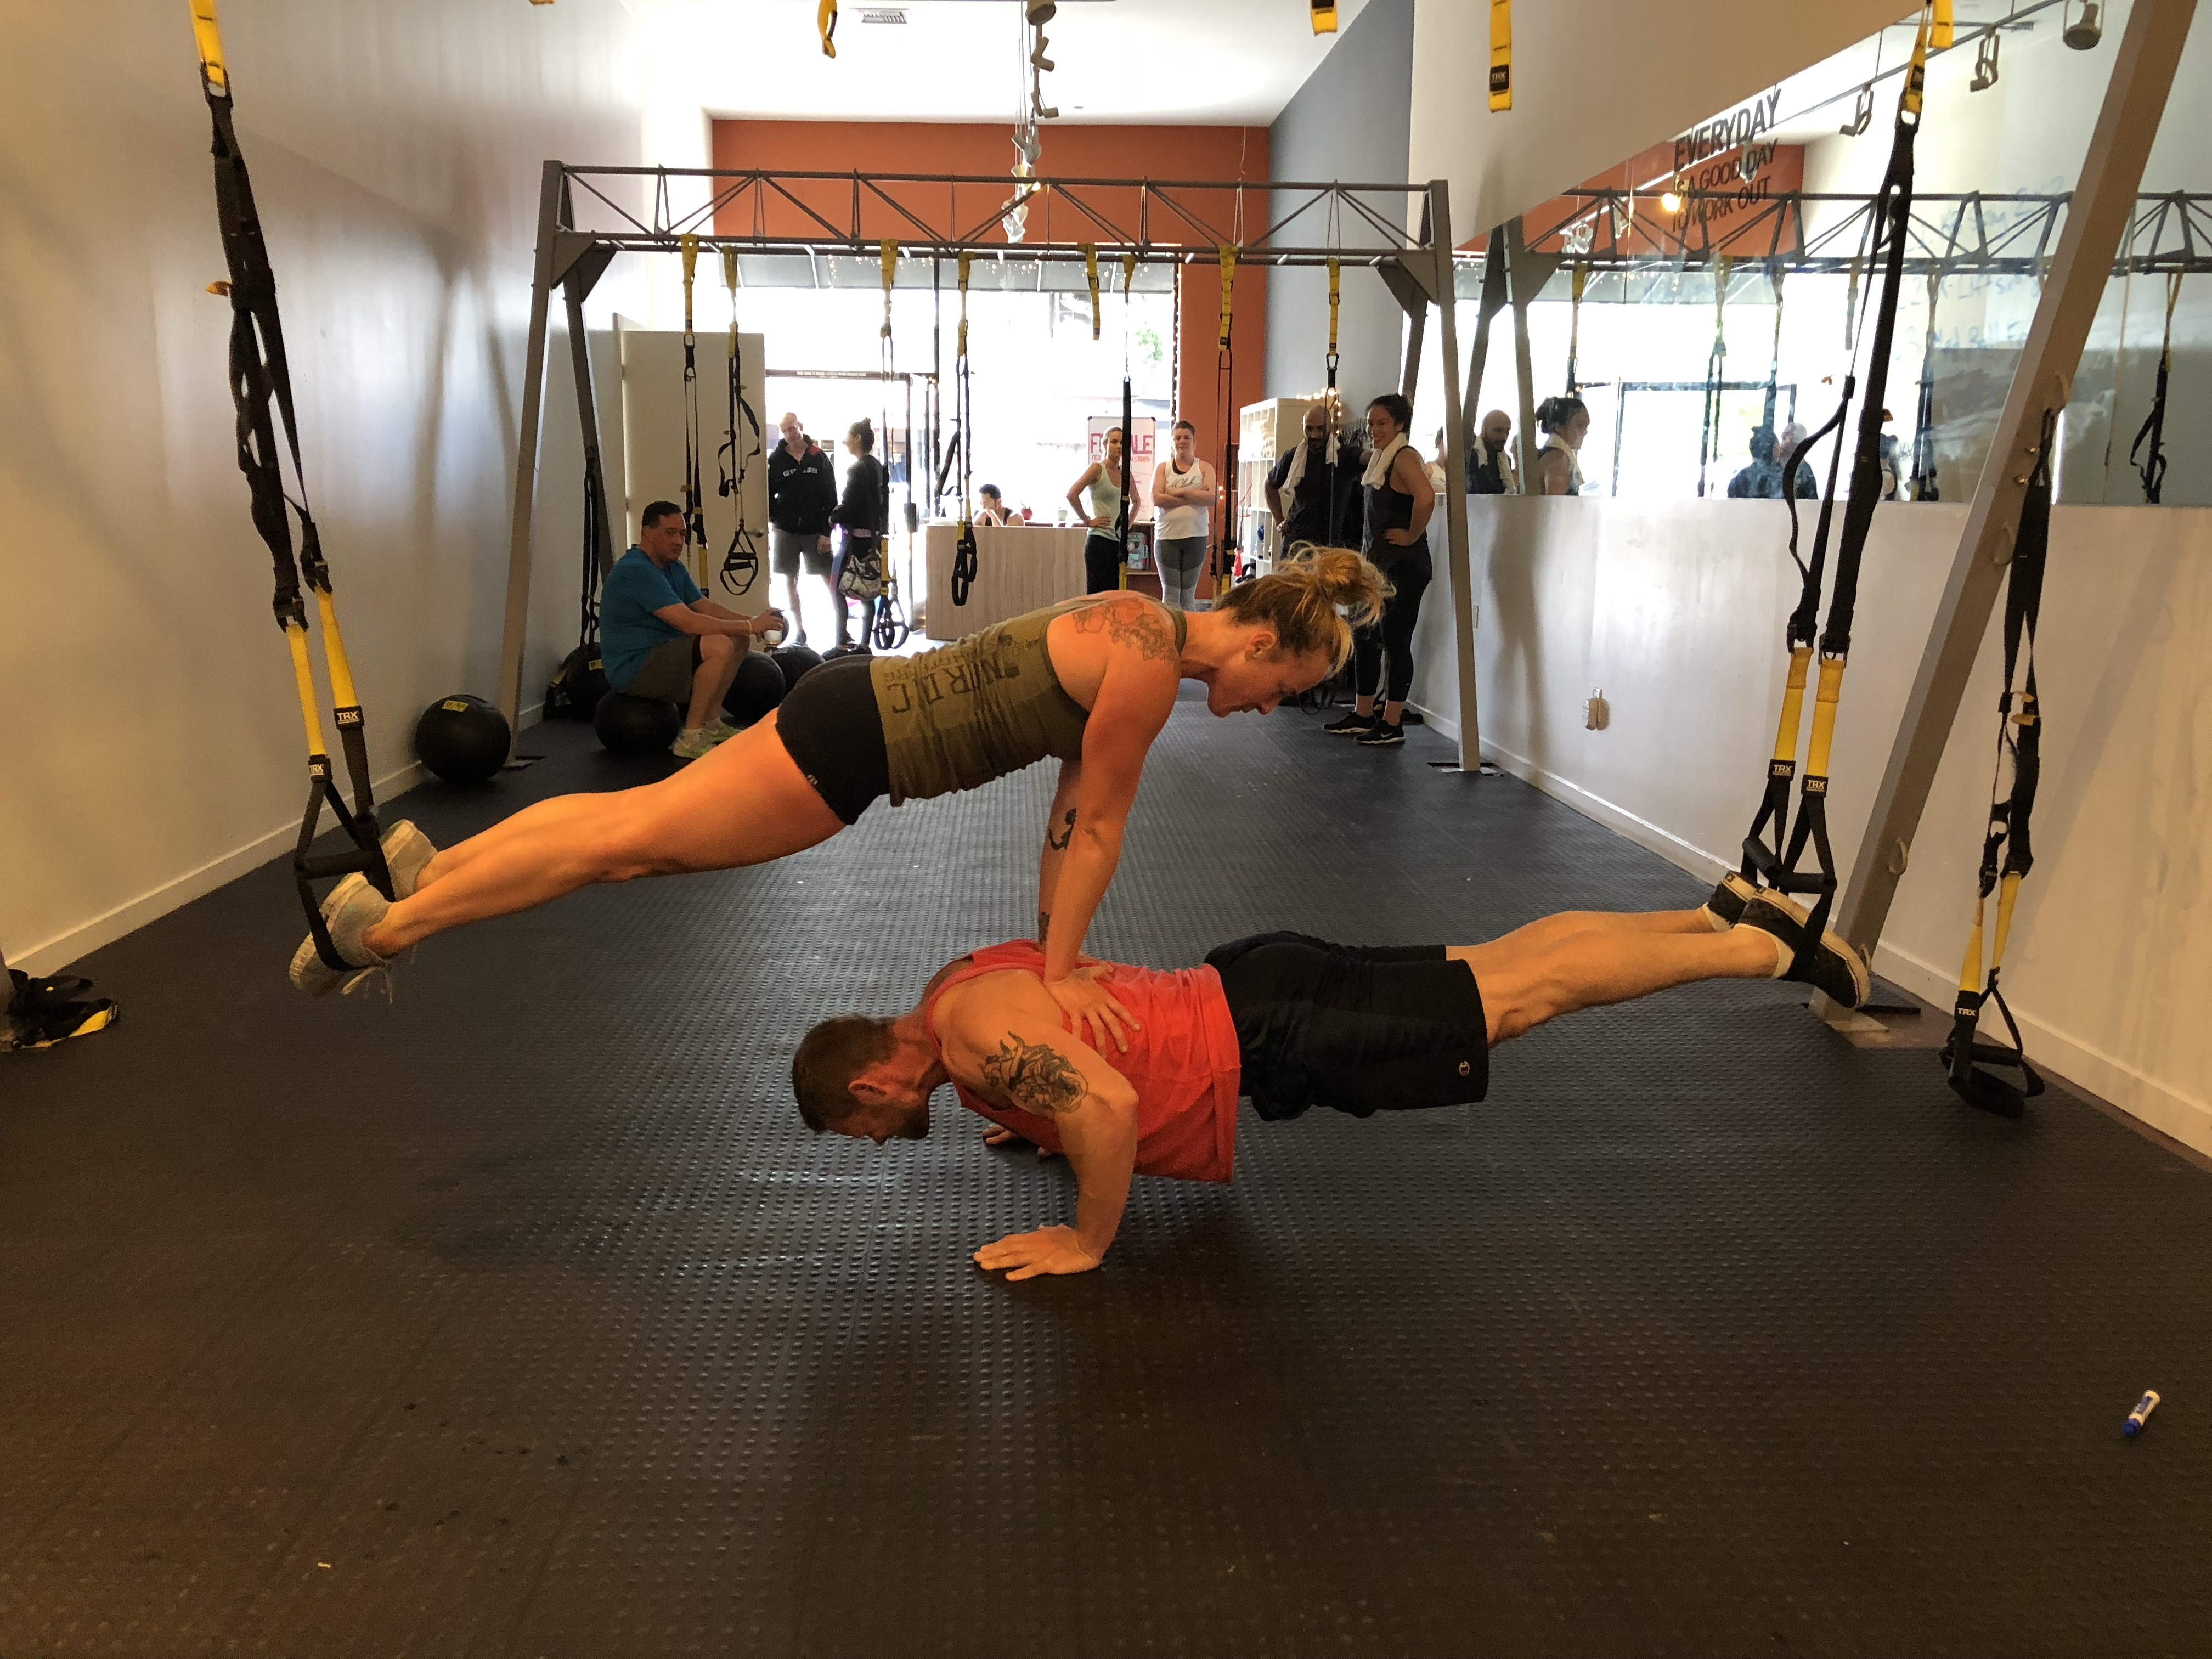 Two trainers perform TRX push ups while stacked above on another